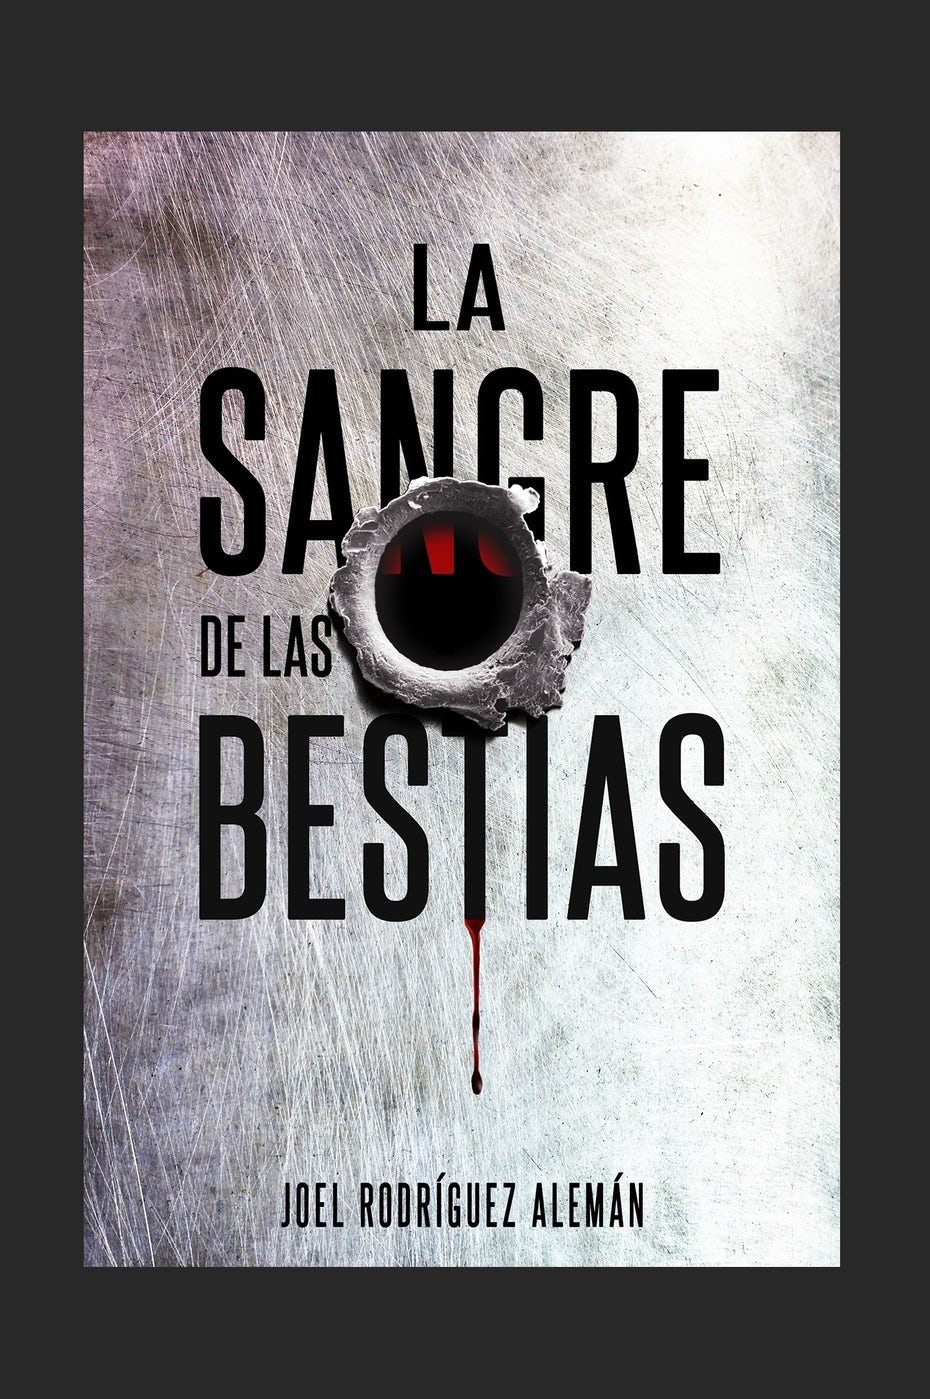 book cover trends example: book cover with gun shot hole